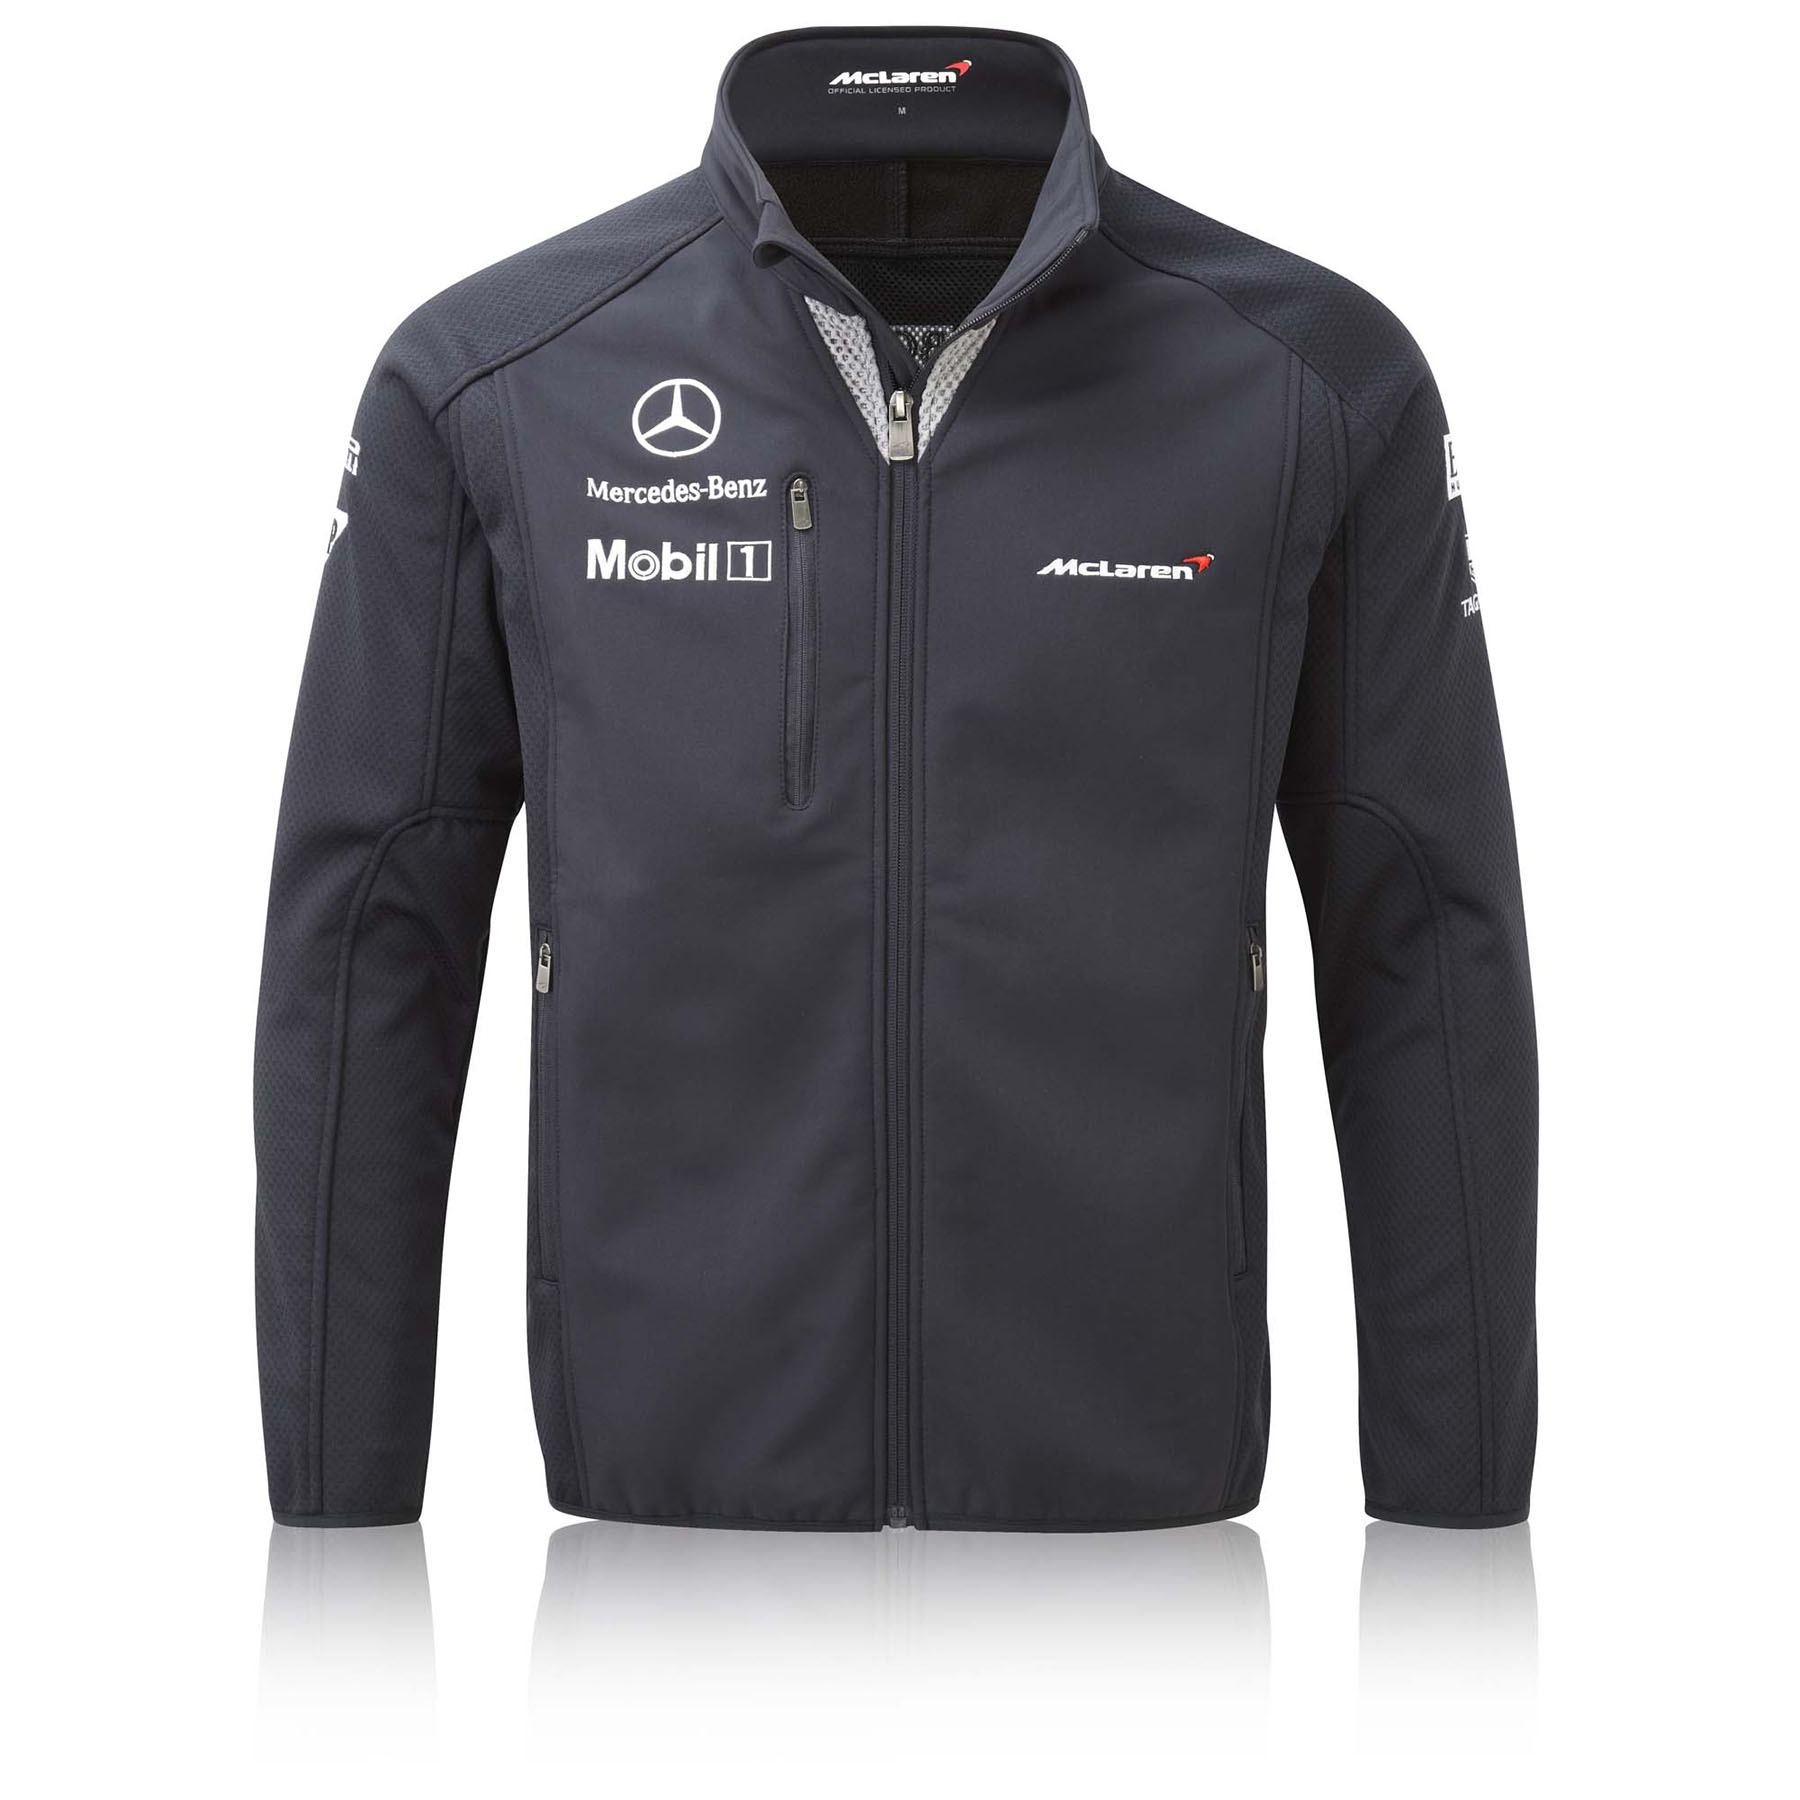 Team McLaren 2014 Team Softshell Jacket